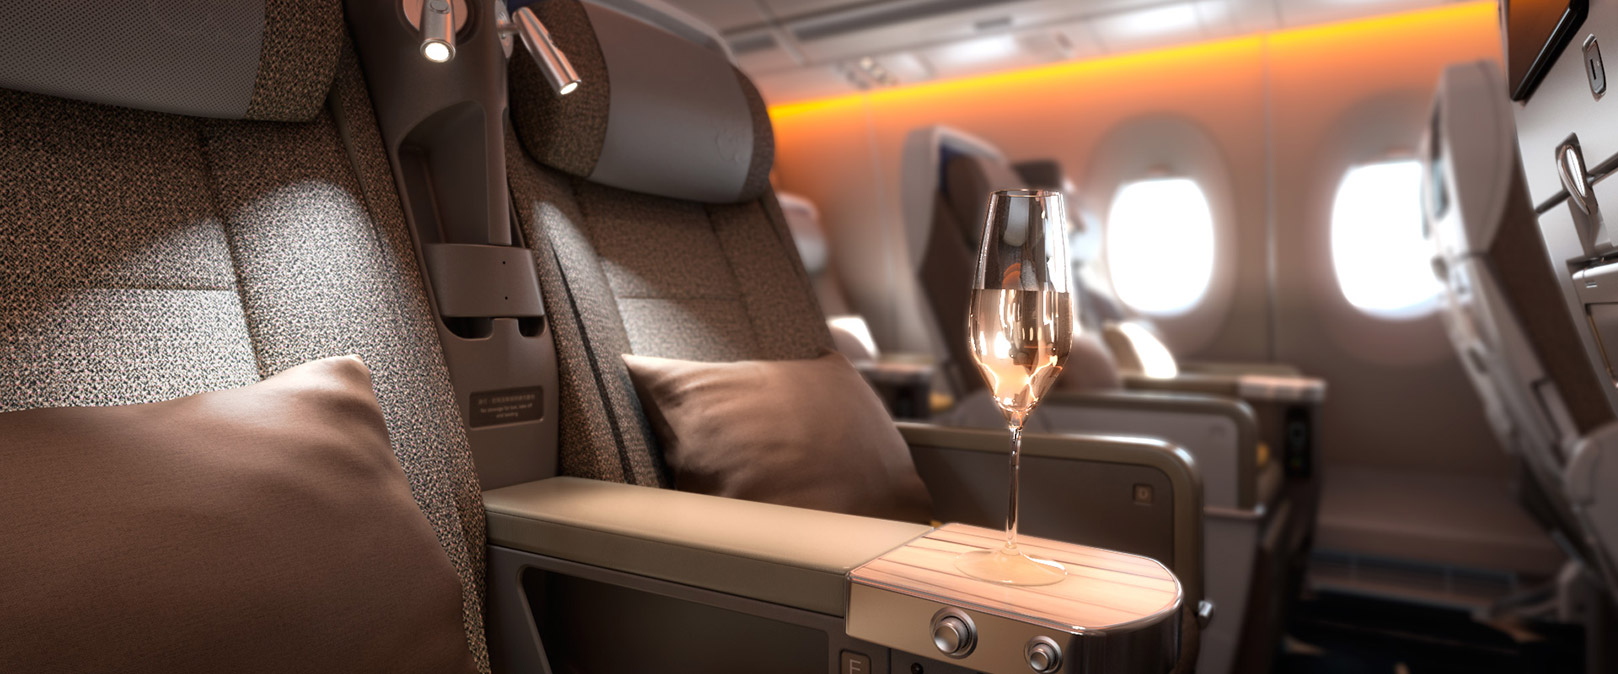 China Airlines Premium Economy official photo